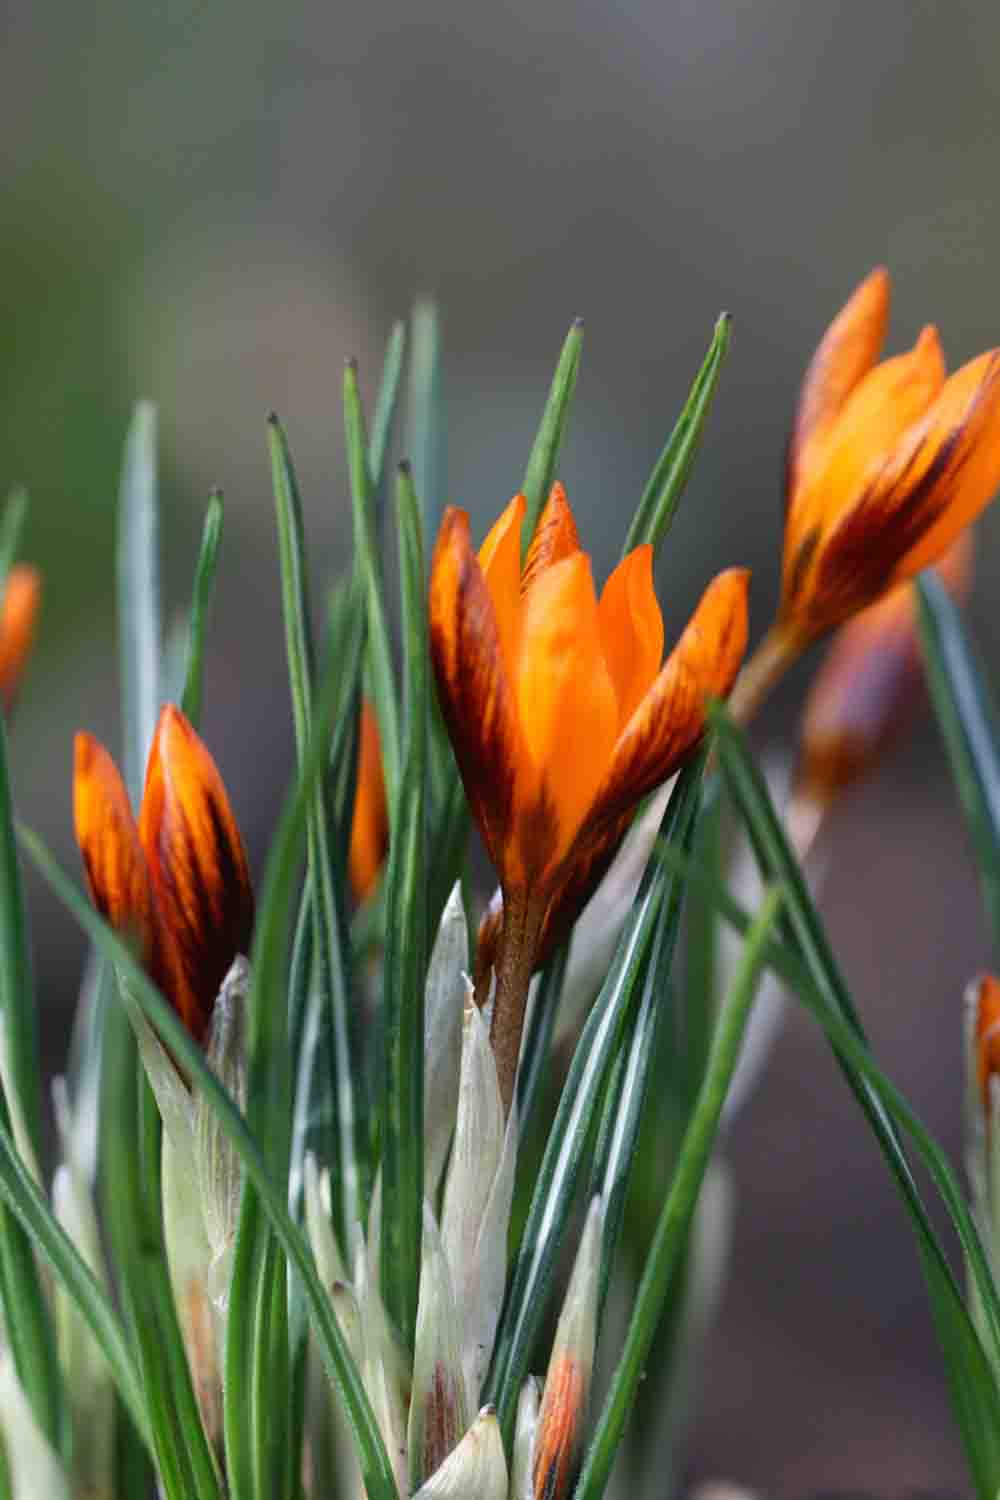 Crocus olivieri ssp. balansae ' Orange Monarch '